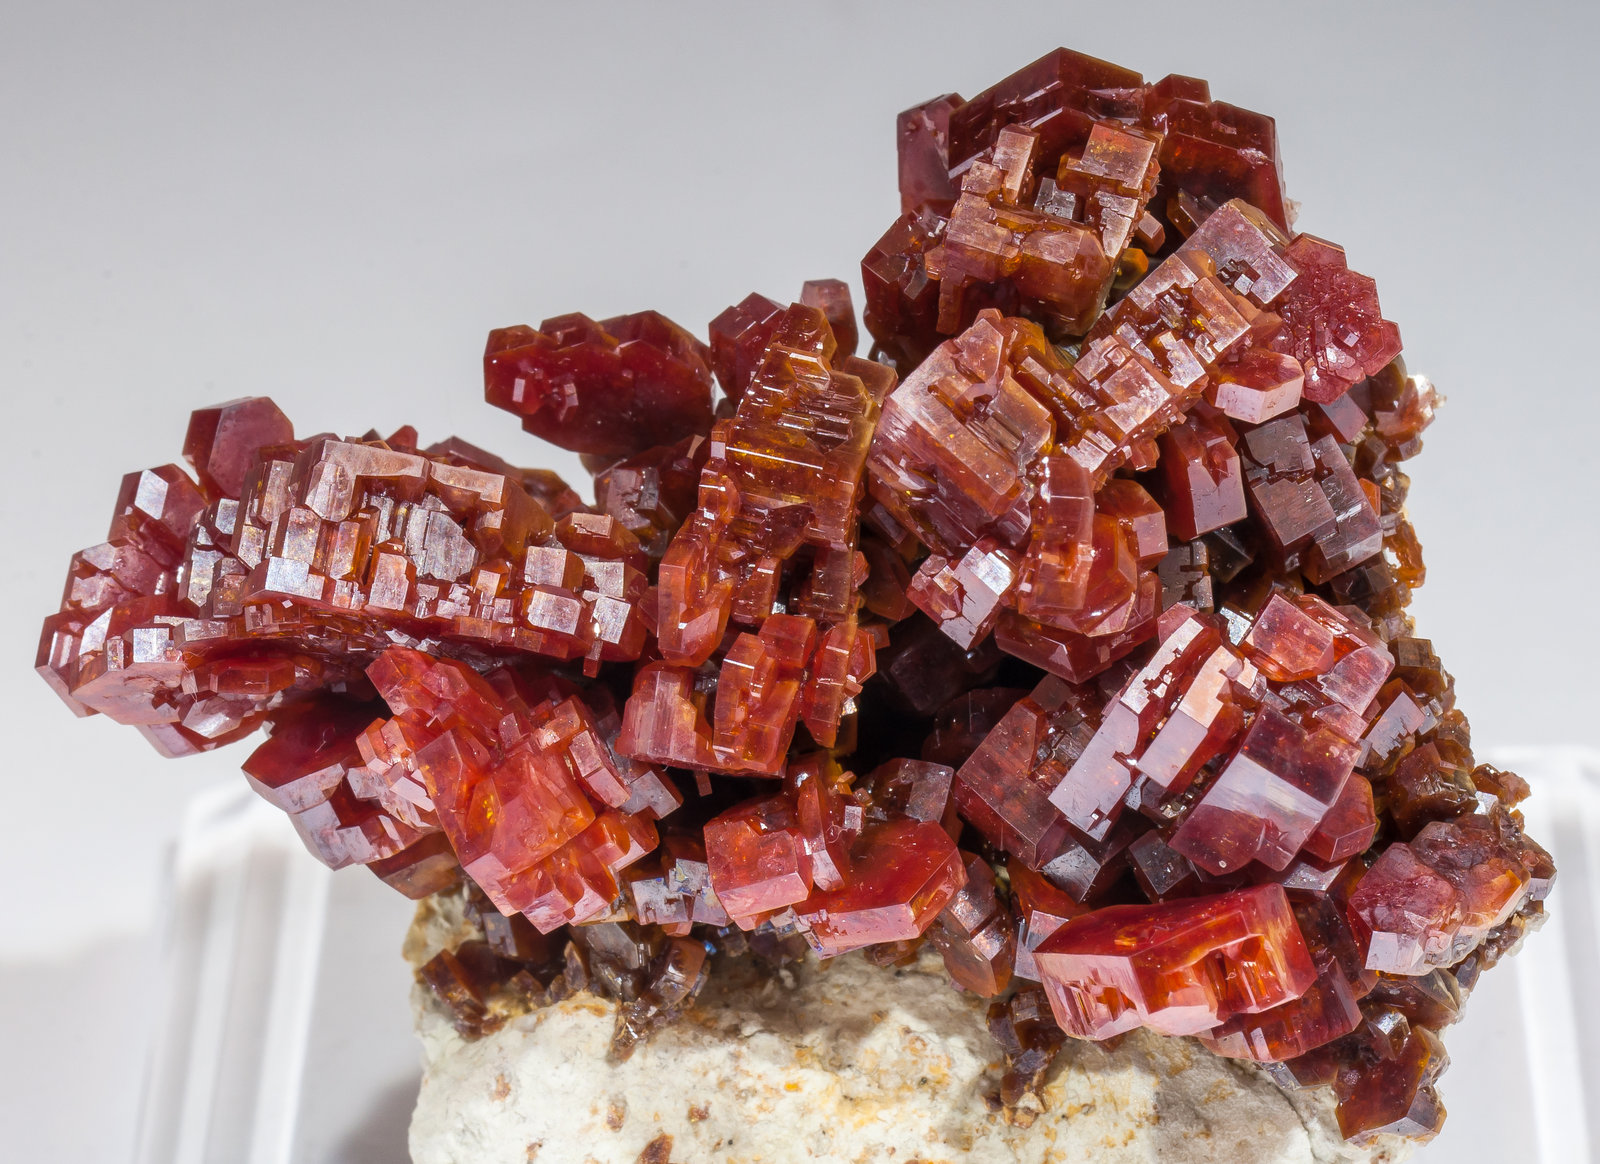 specimens/s_imagesAM3/Vanadinite-EL96AM3d1.jpg